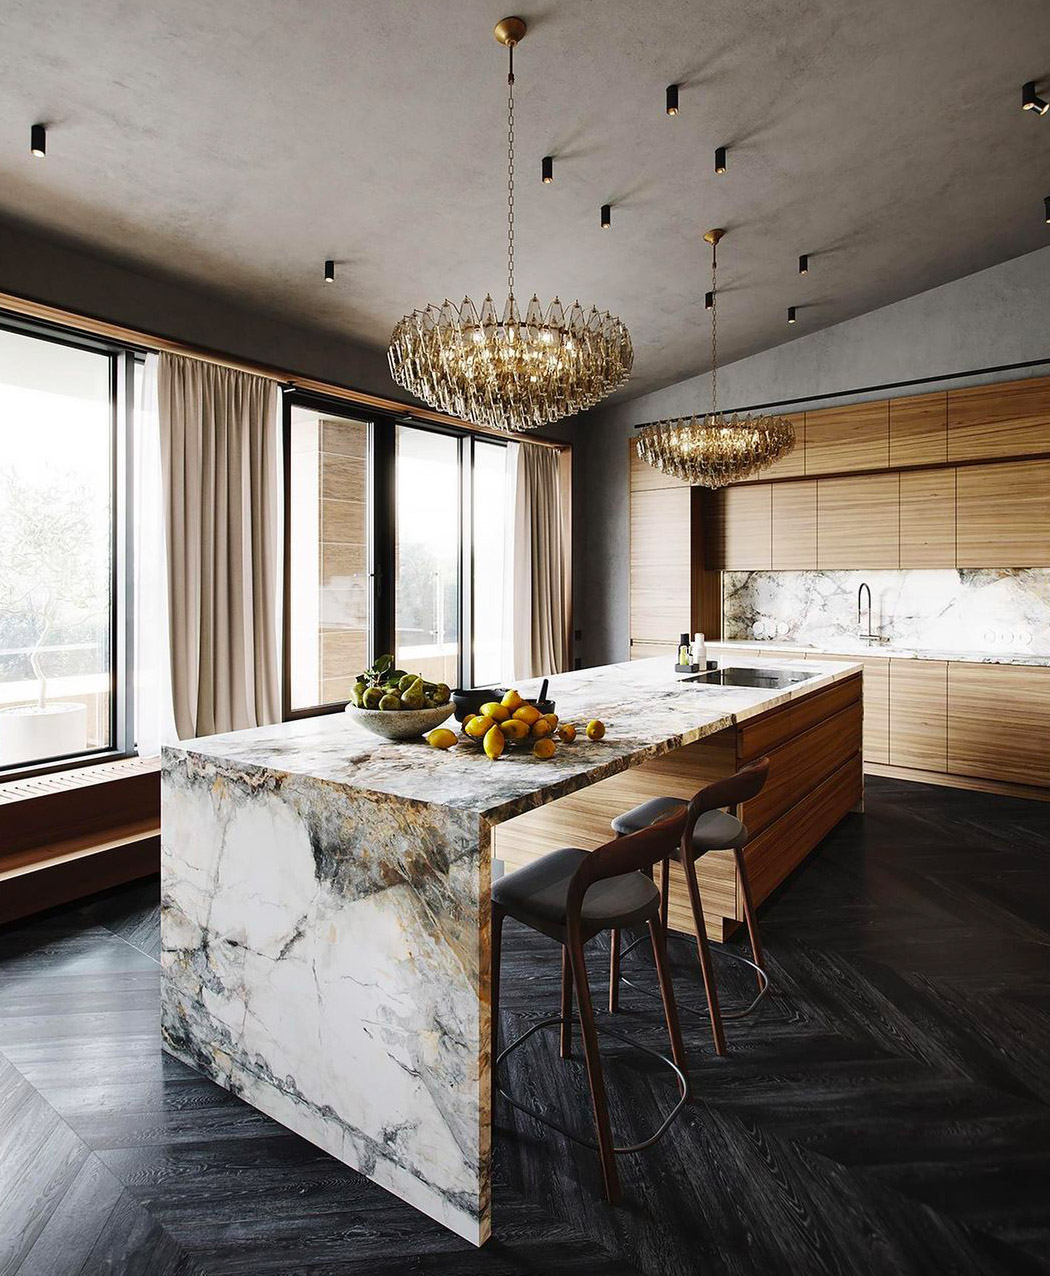 Kitchen Designs that will be major inspiration for your dream kitchen goals!